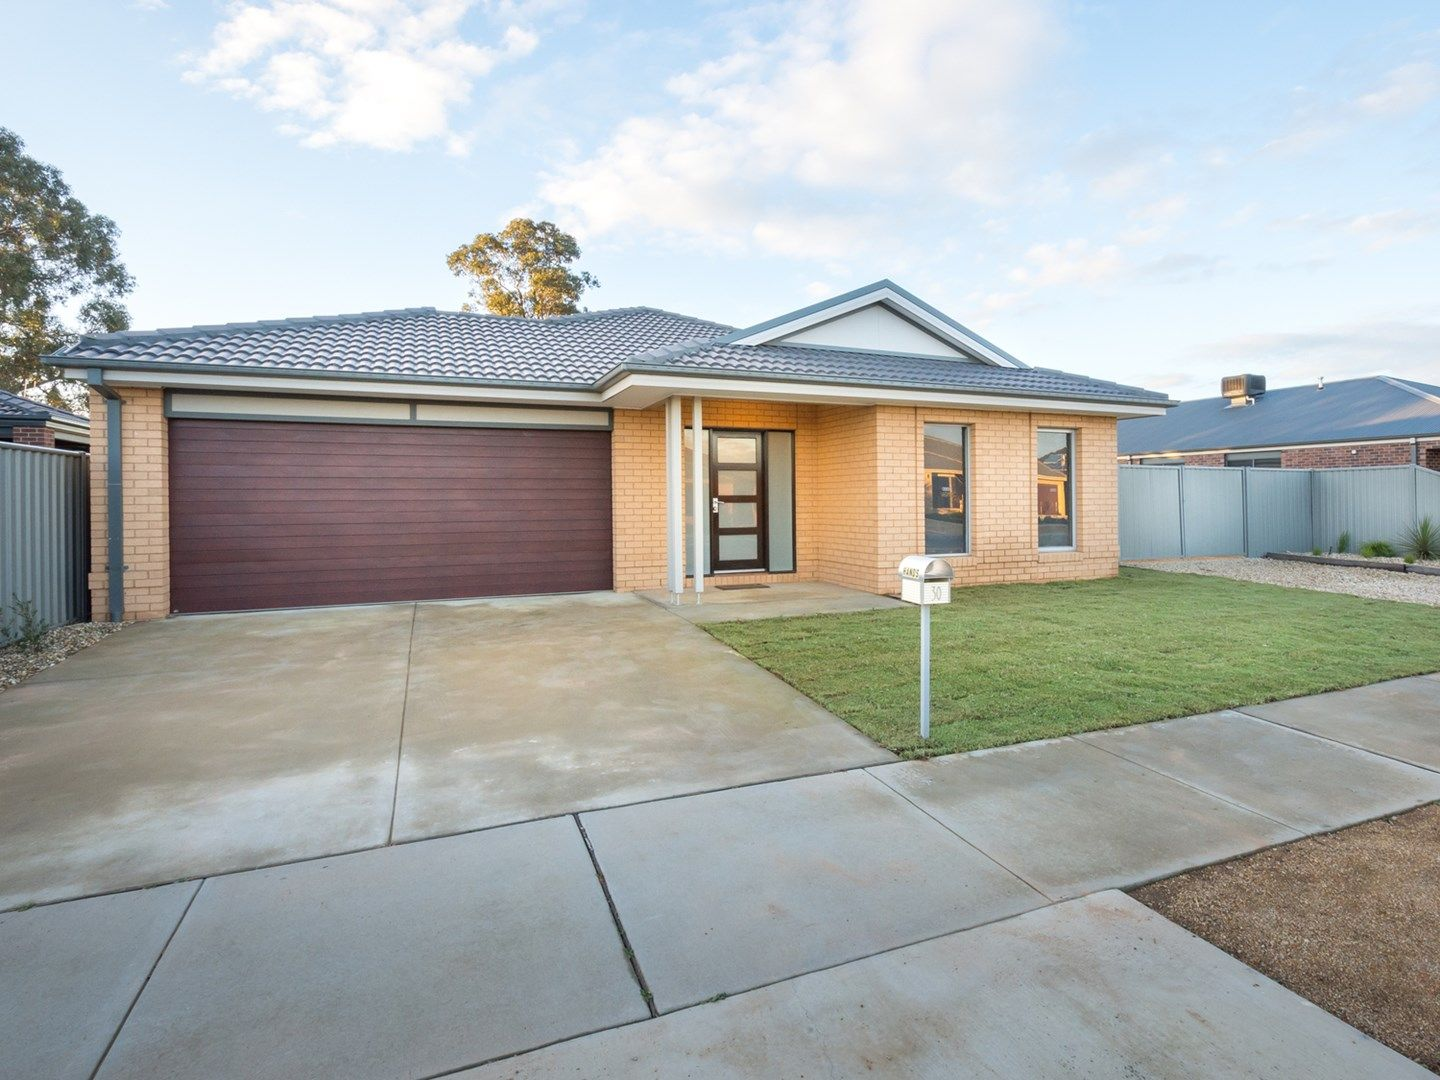 30 Killarney Crescent, Tatura VIC 3616, Image 0